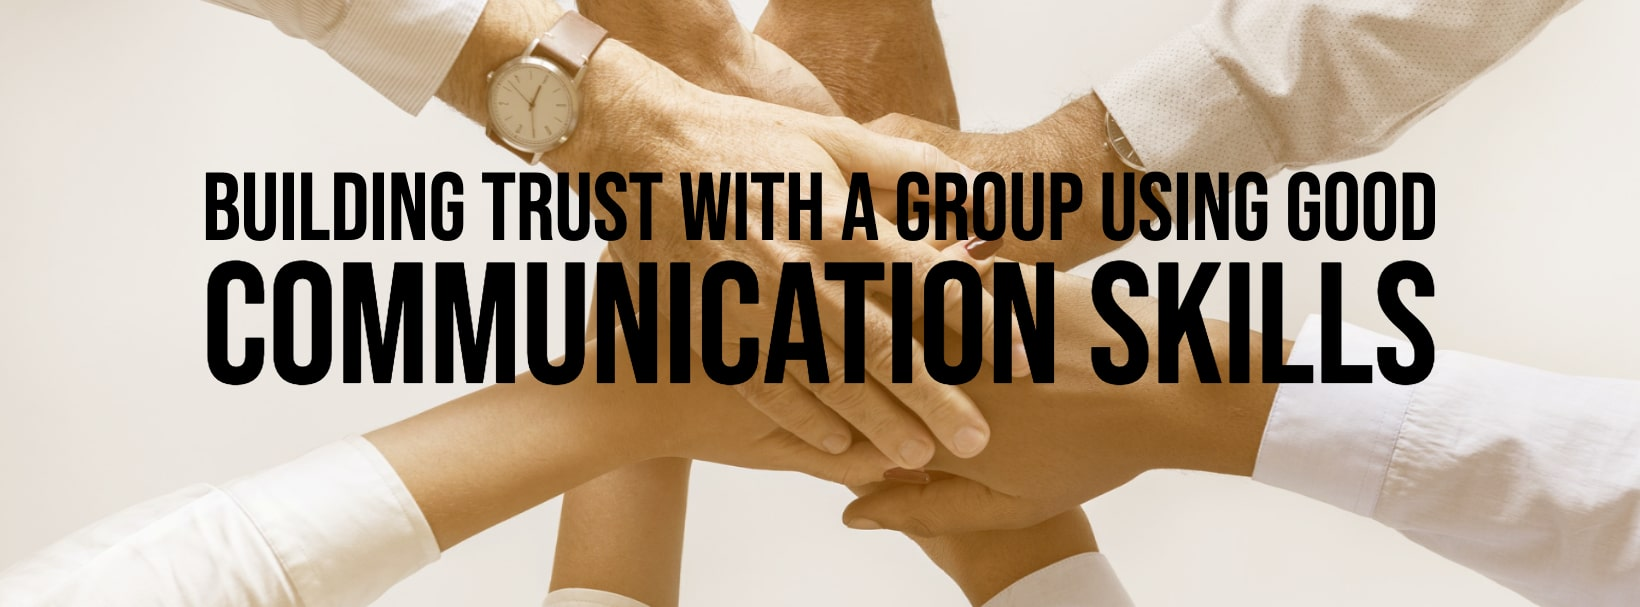 Building Trust with a Group Using Good Communication Skills